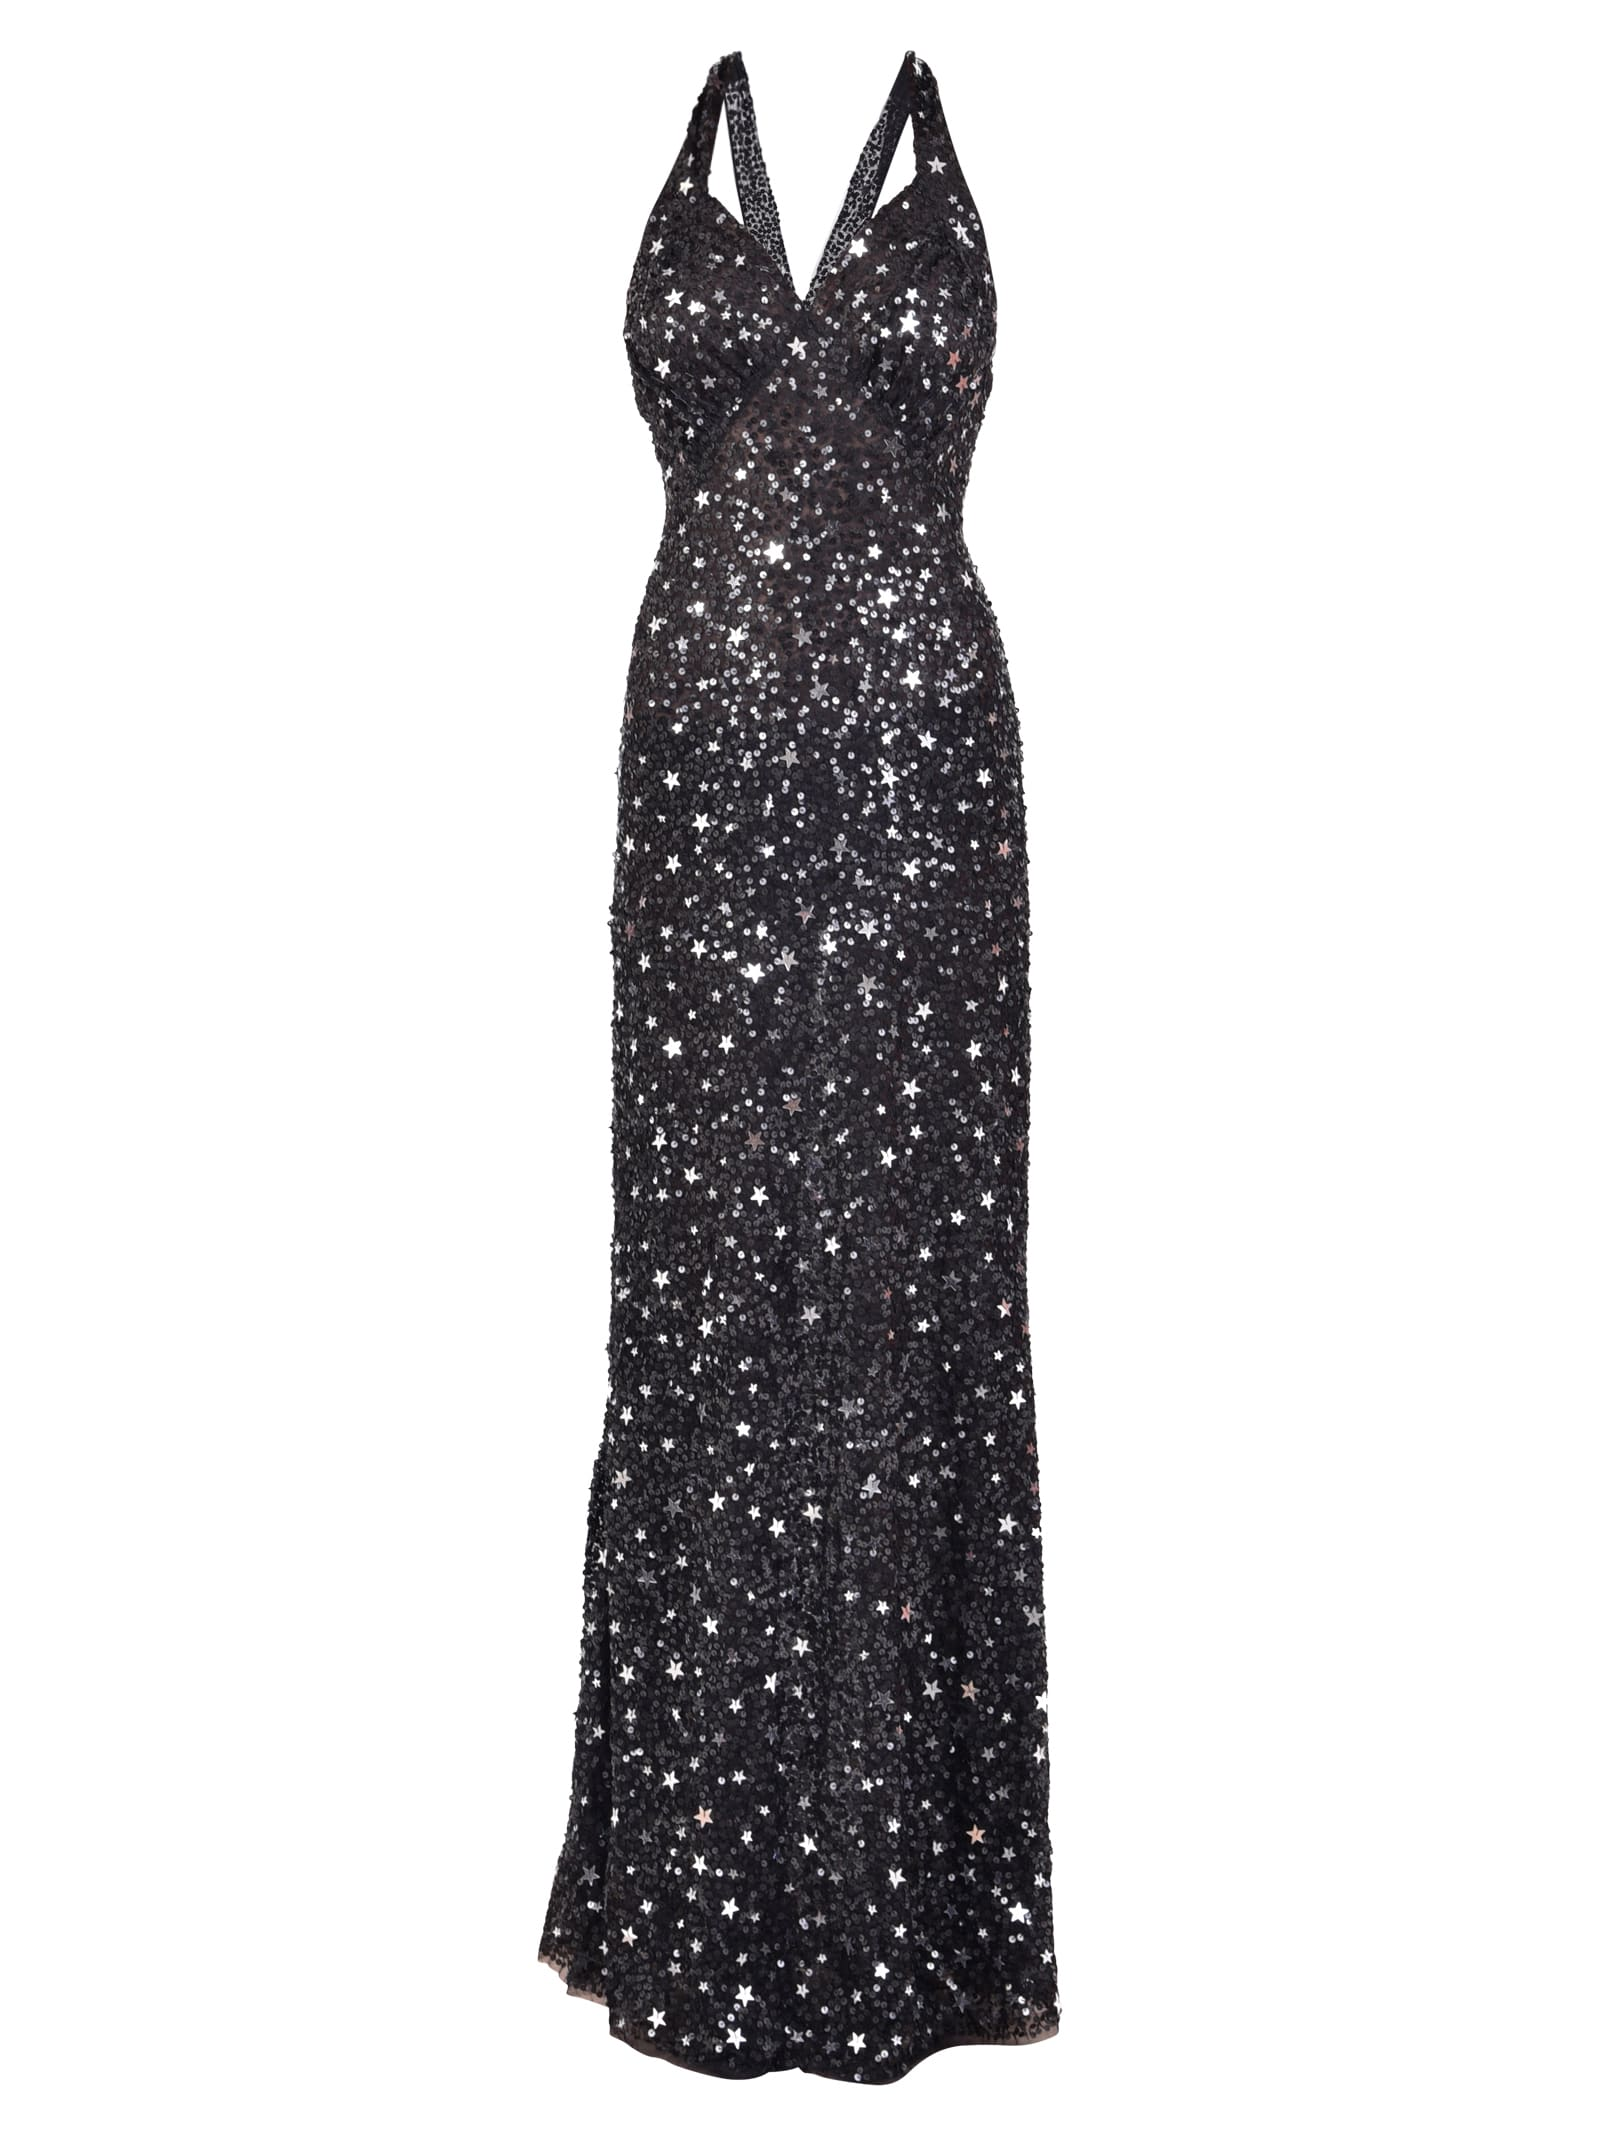 The Attico Sequinned Long Dress